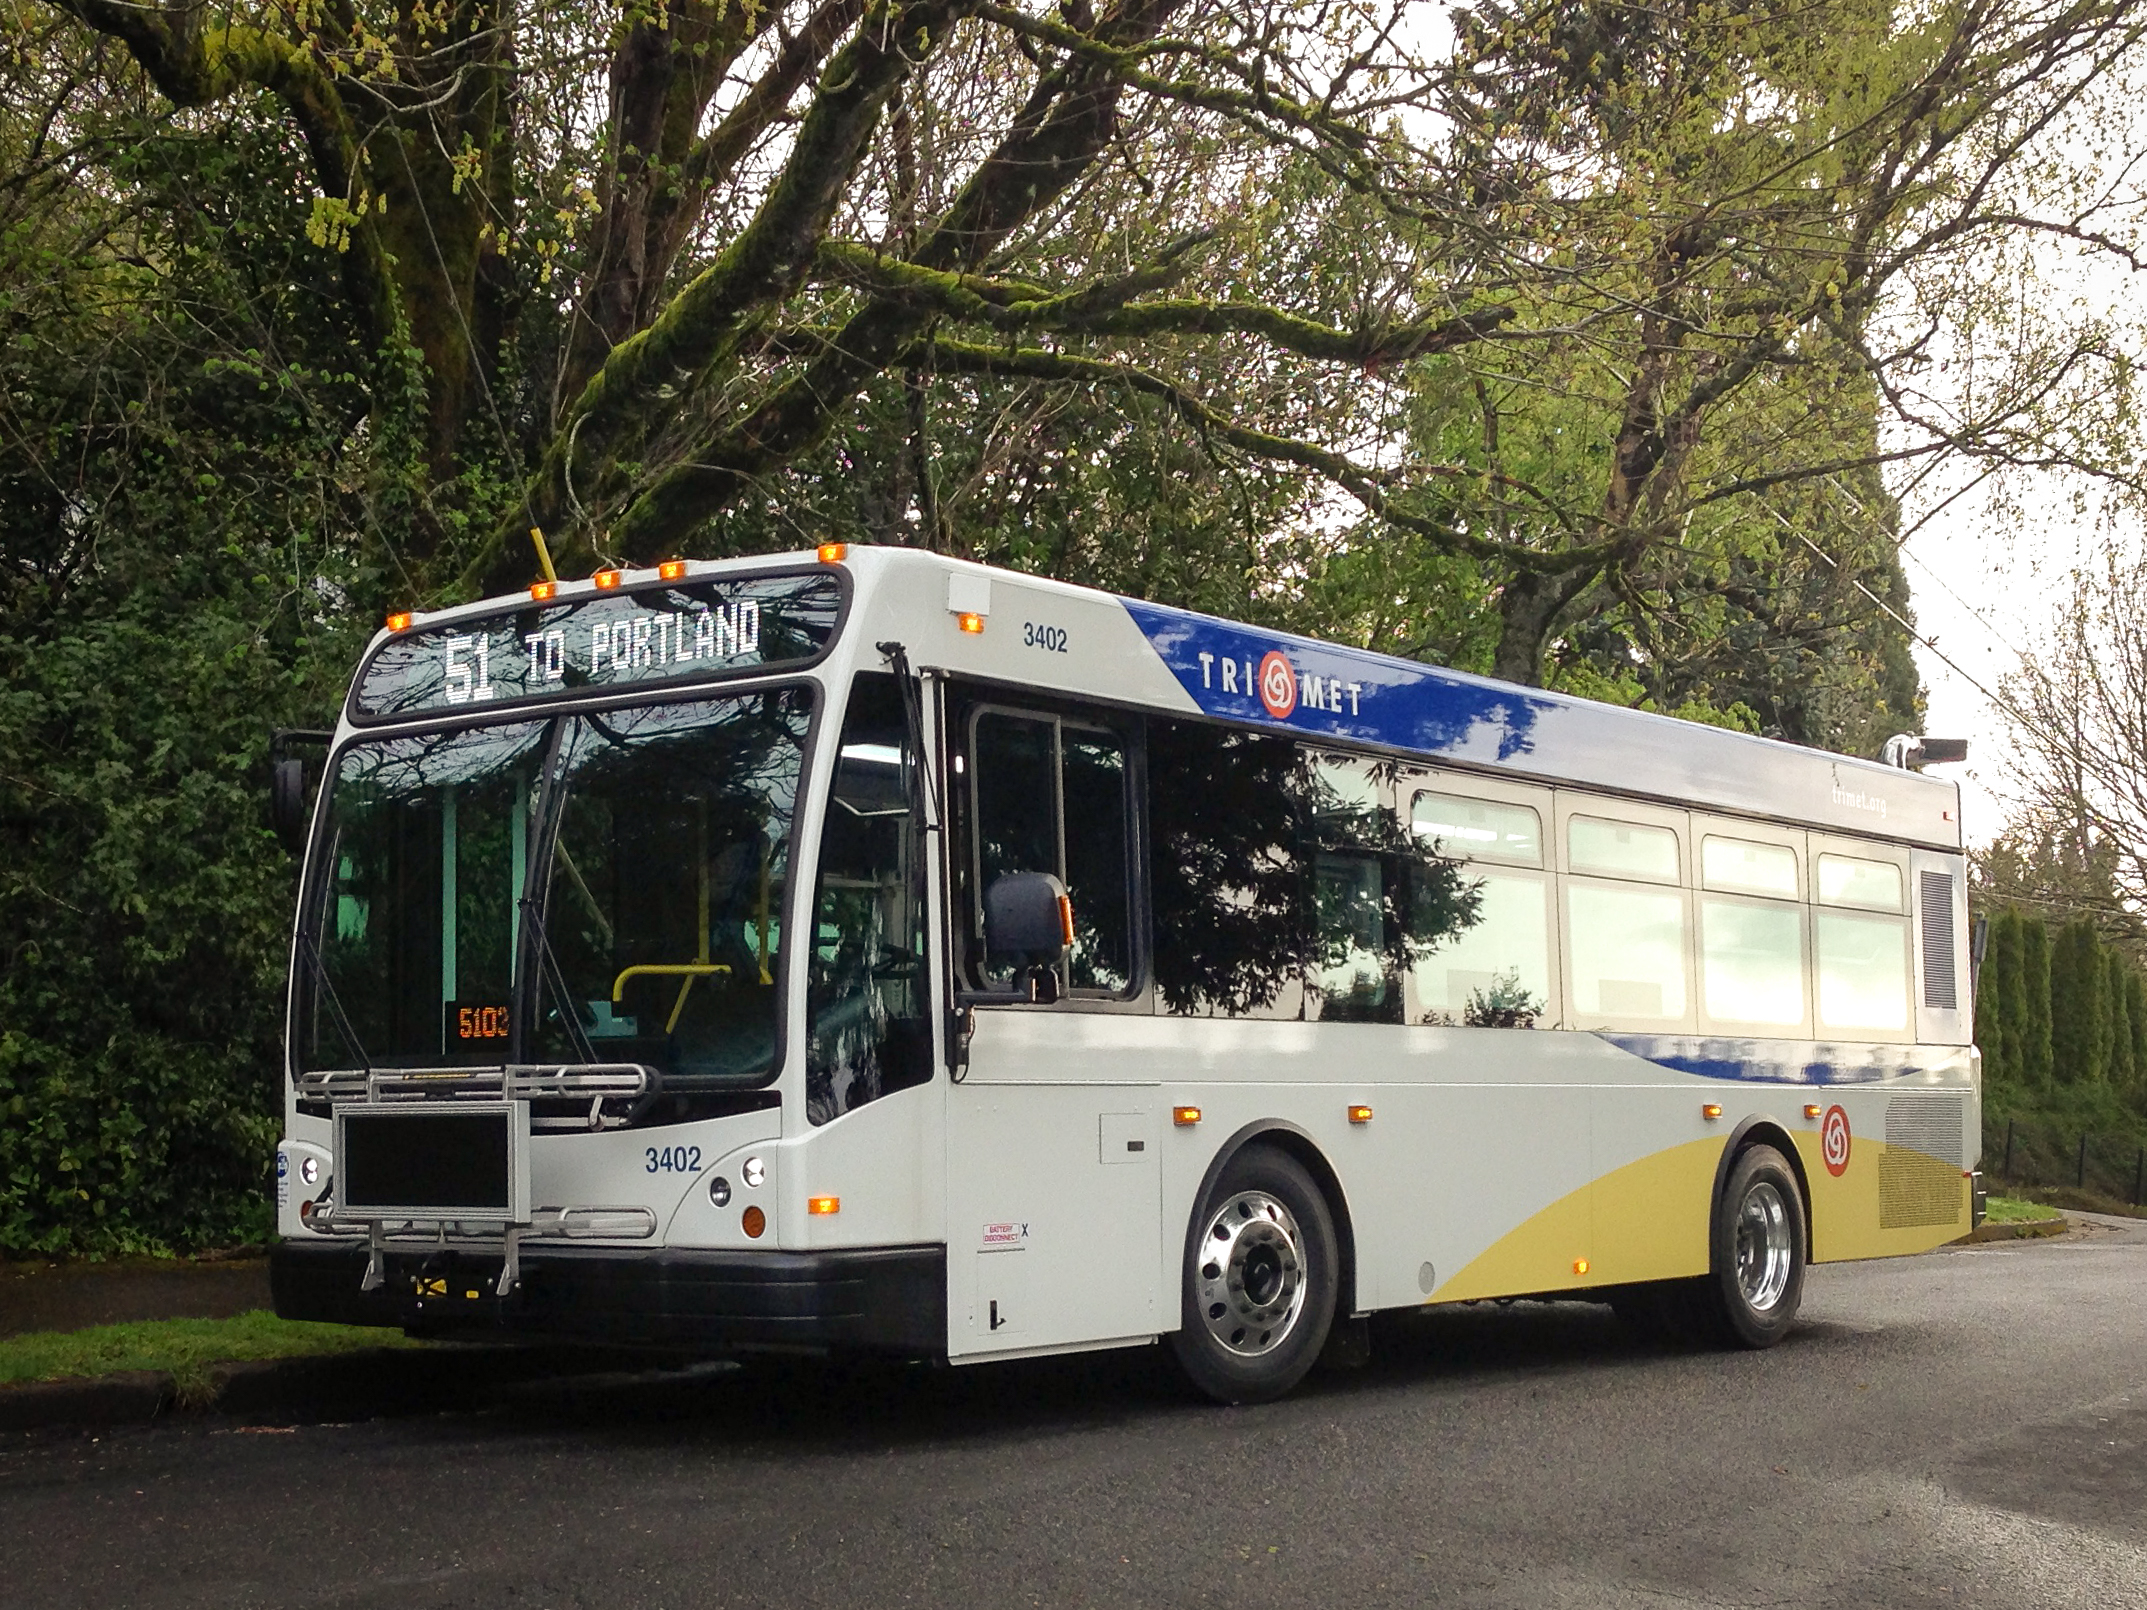 new 30-foot trimet buses are now in service in areas with tighter